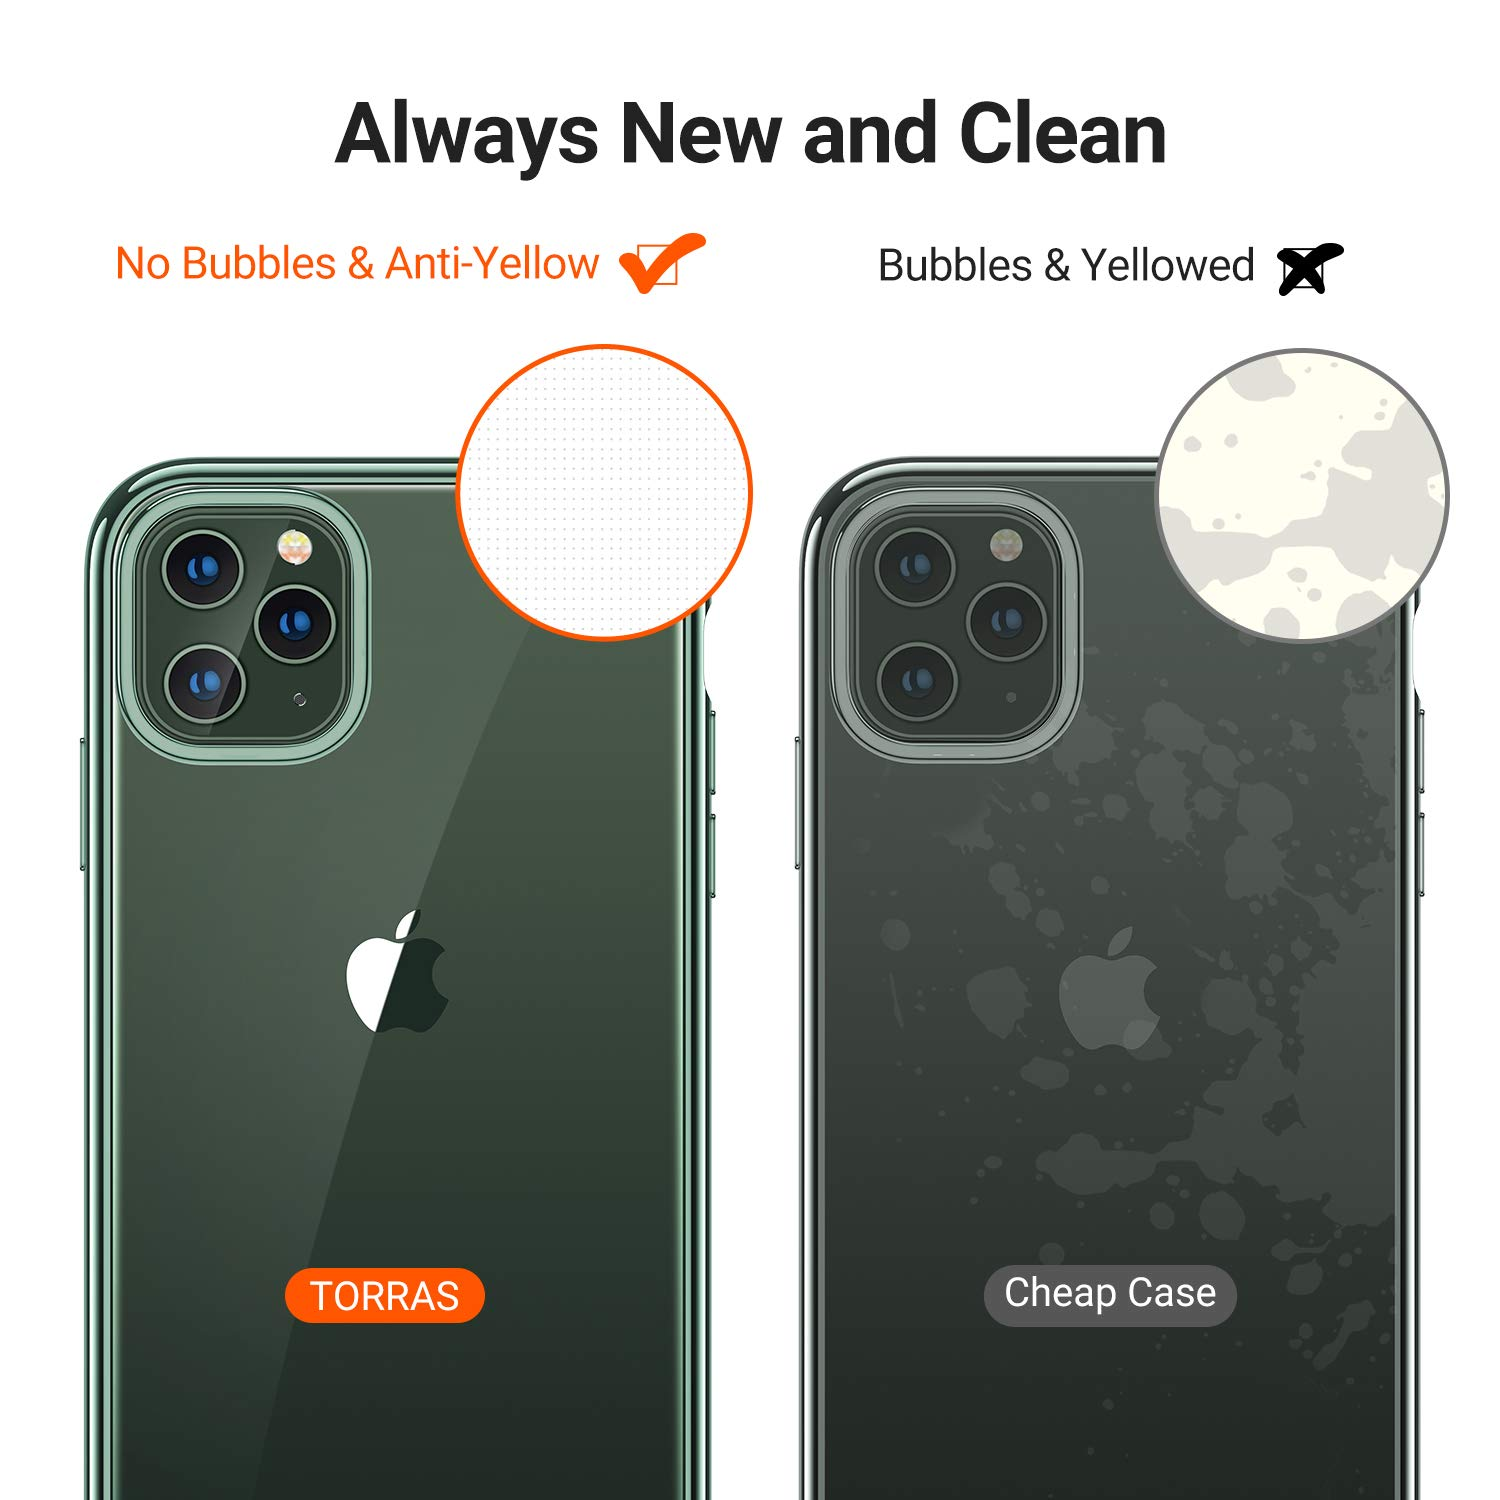 Black Rim Anti-Yellow TORRAS Crystal Clear iPhone 11 Pro Max Case, with Electroplated Frame Soft TPU Silicone Shockproof Protective Cover Case for iPhone 11 Pro Max